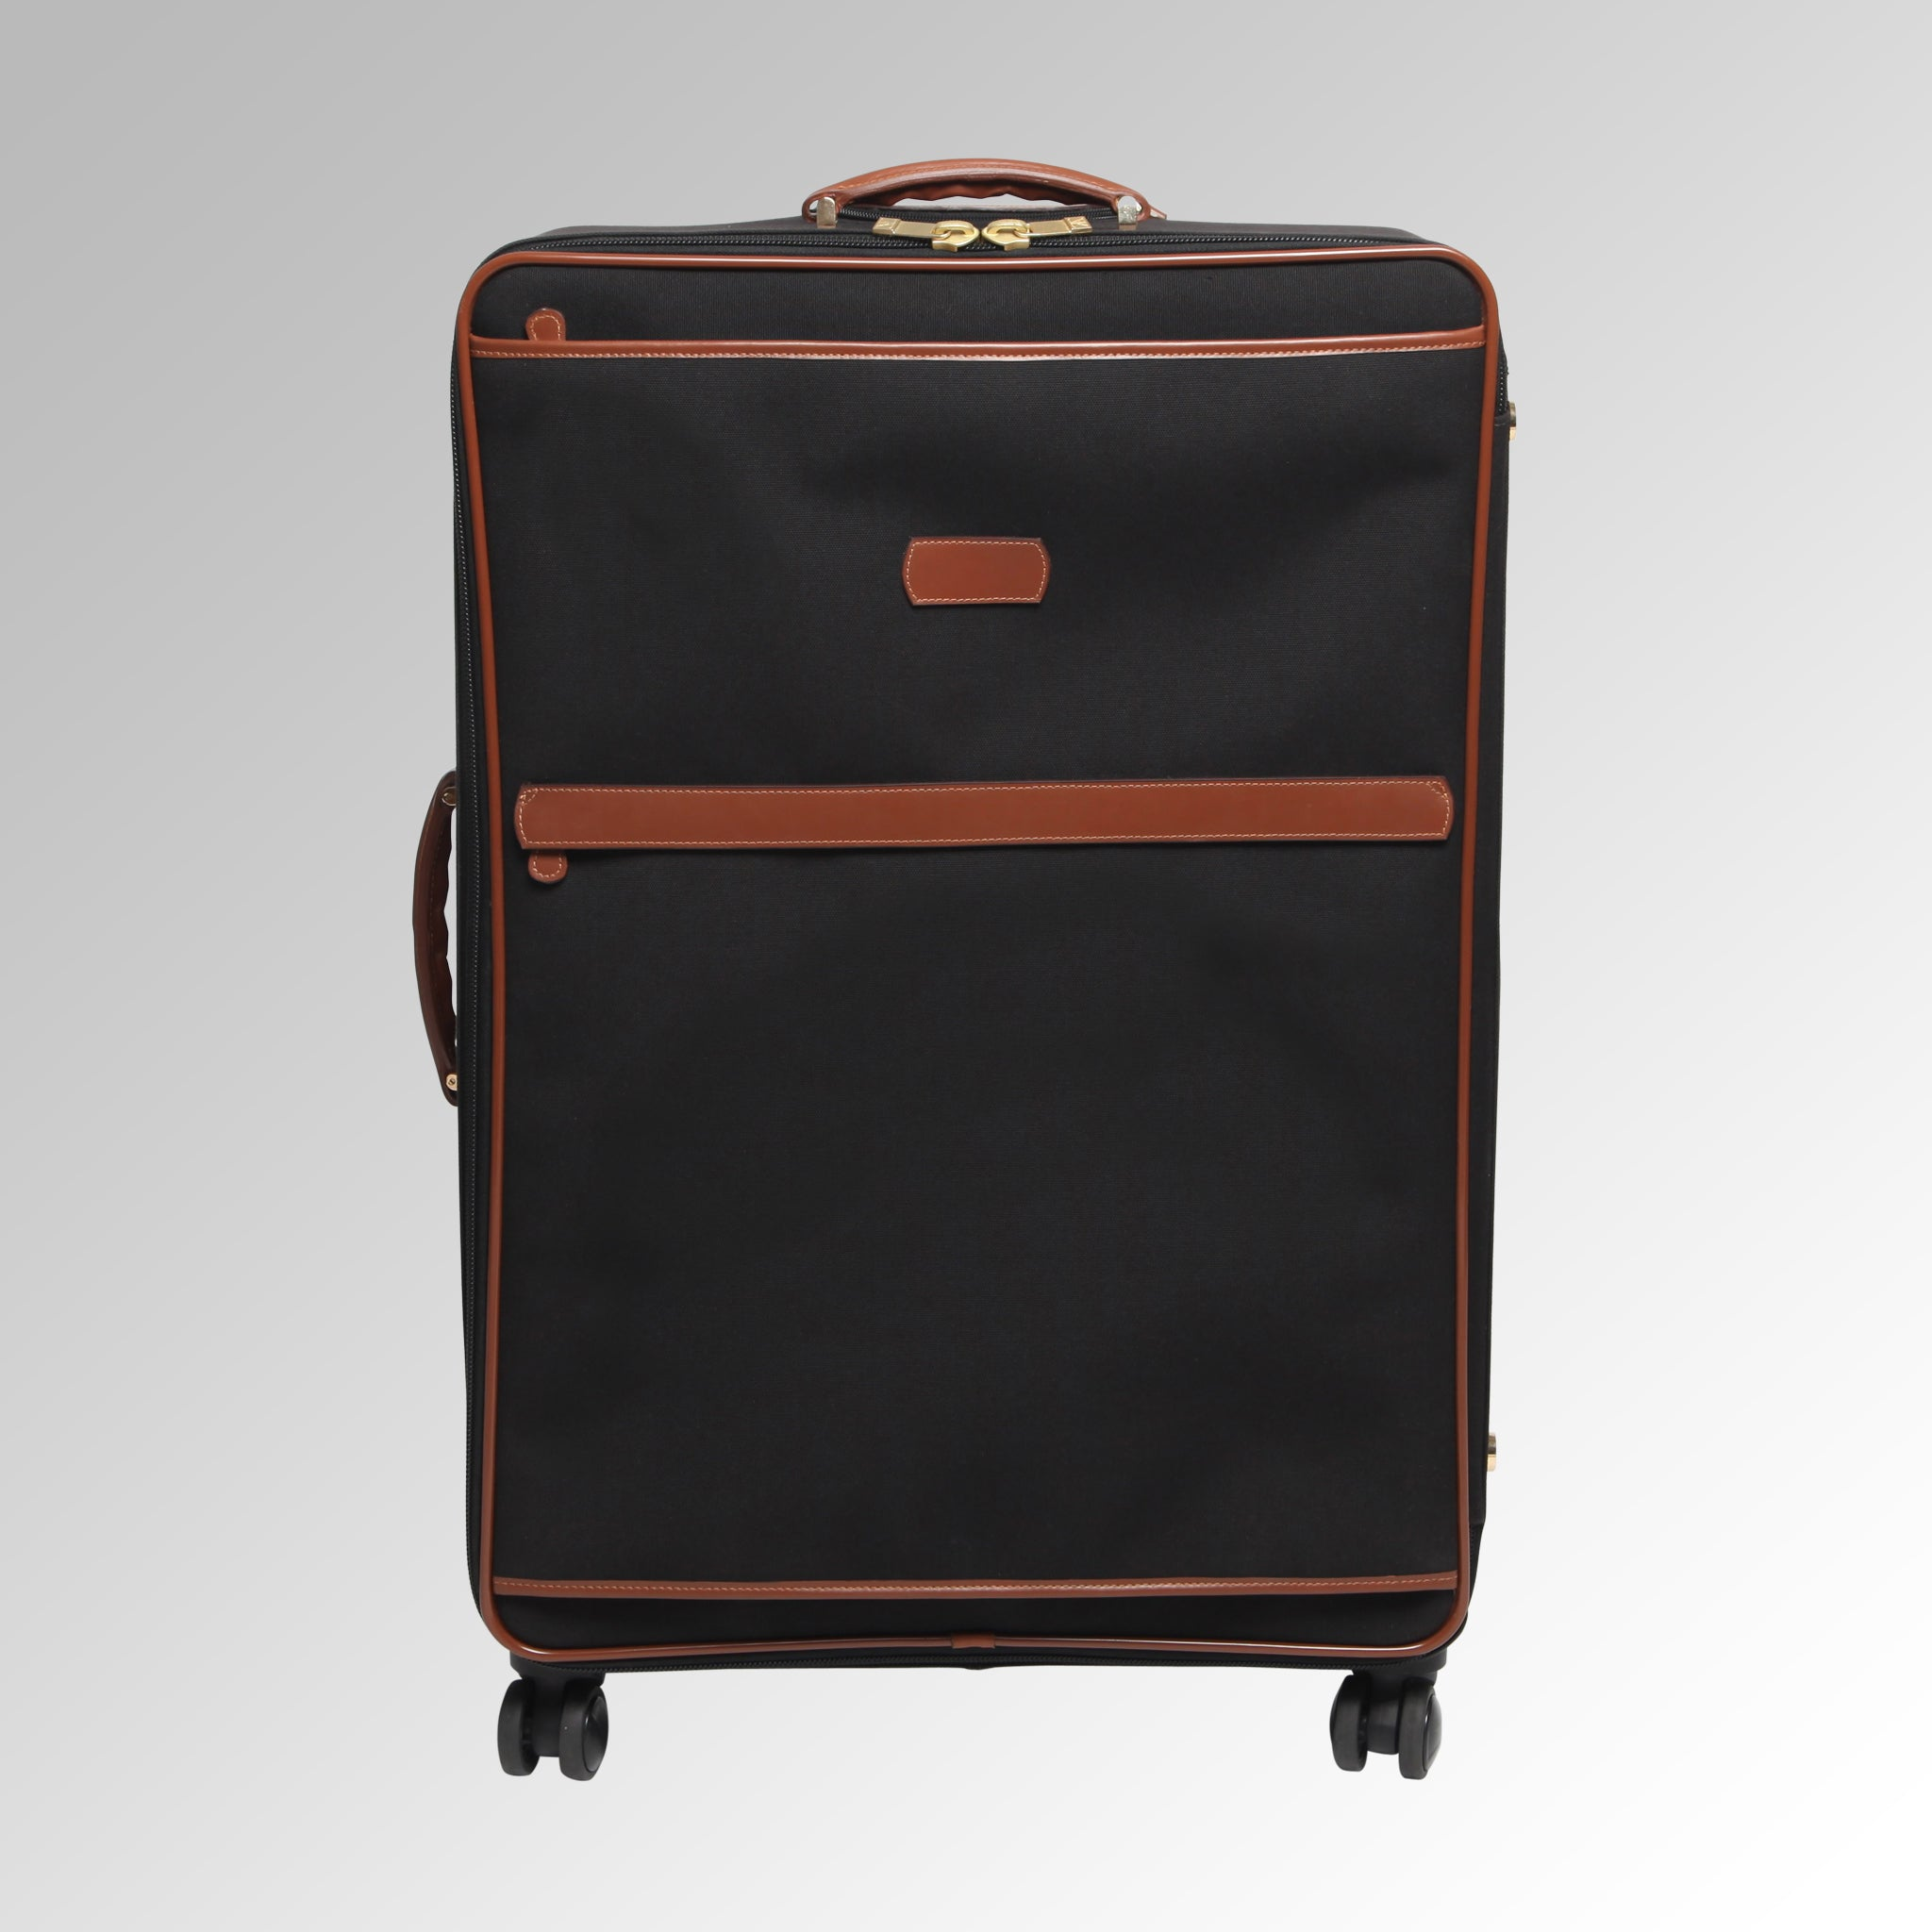 Travel - Black/Tan Wheeled Luggage